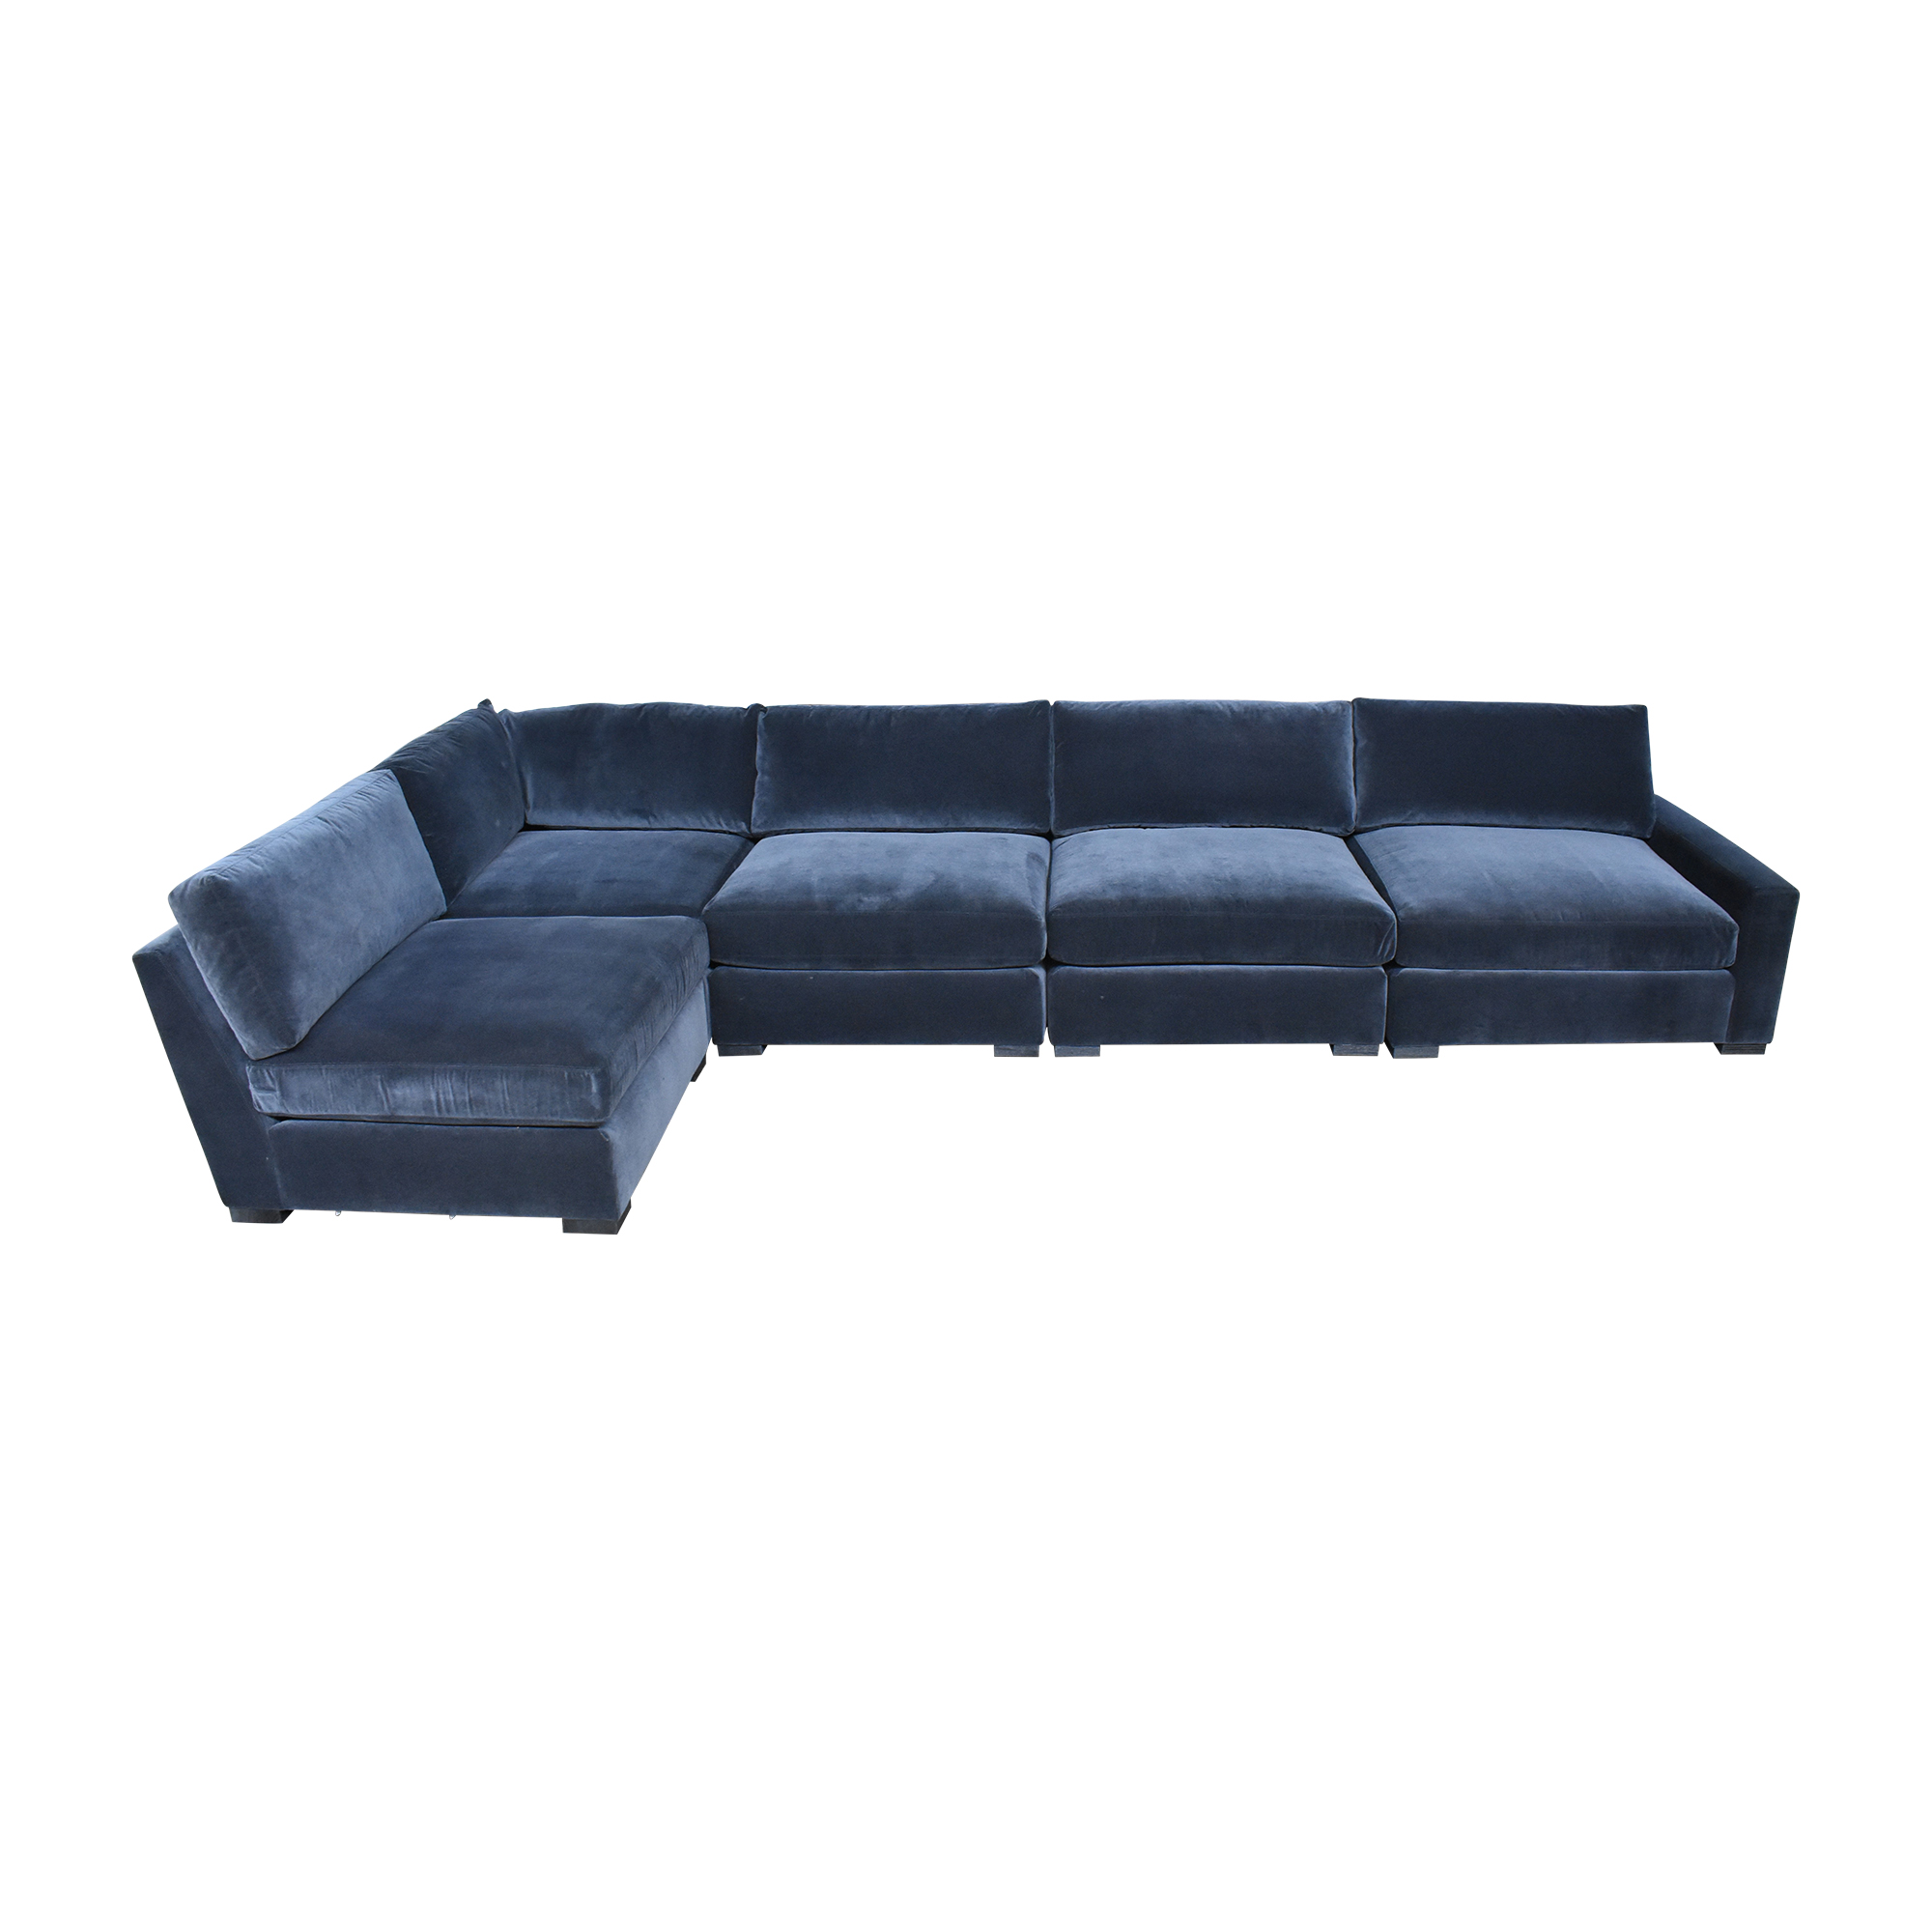 buy Restoration Hardware Restoration Hardware Maxwell L Shaped Sectional Sofa online